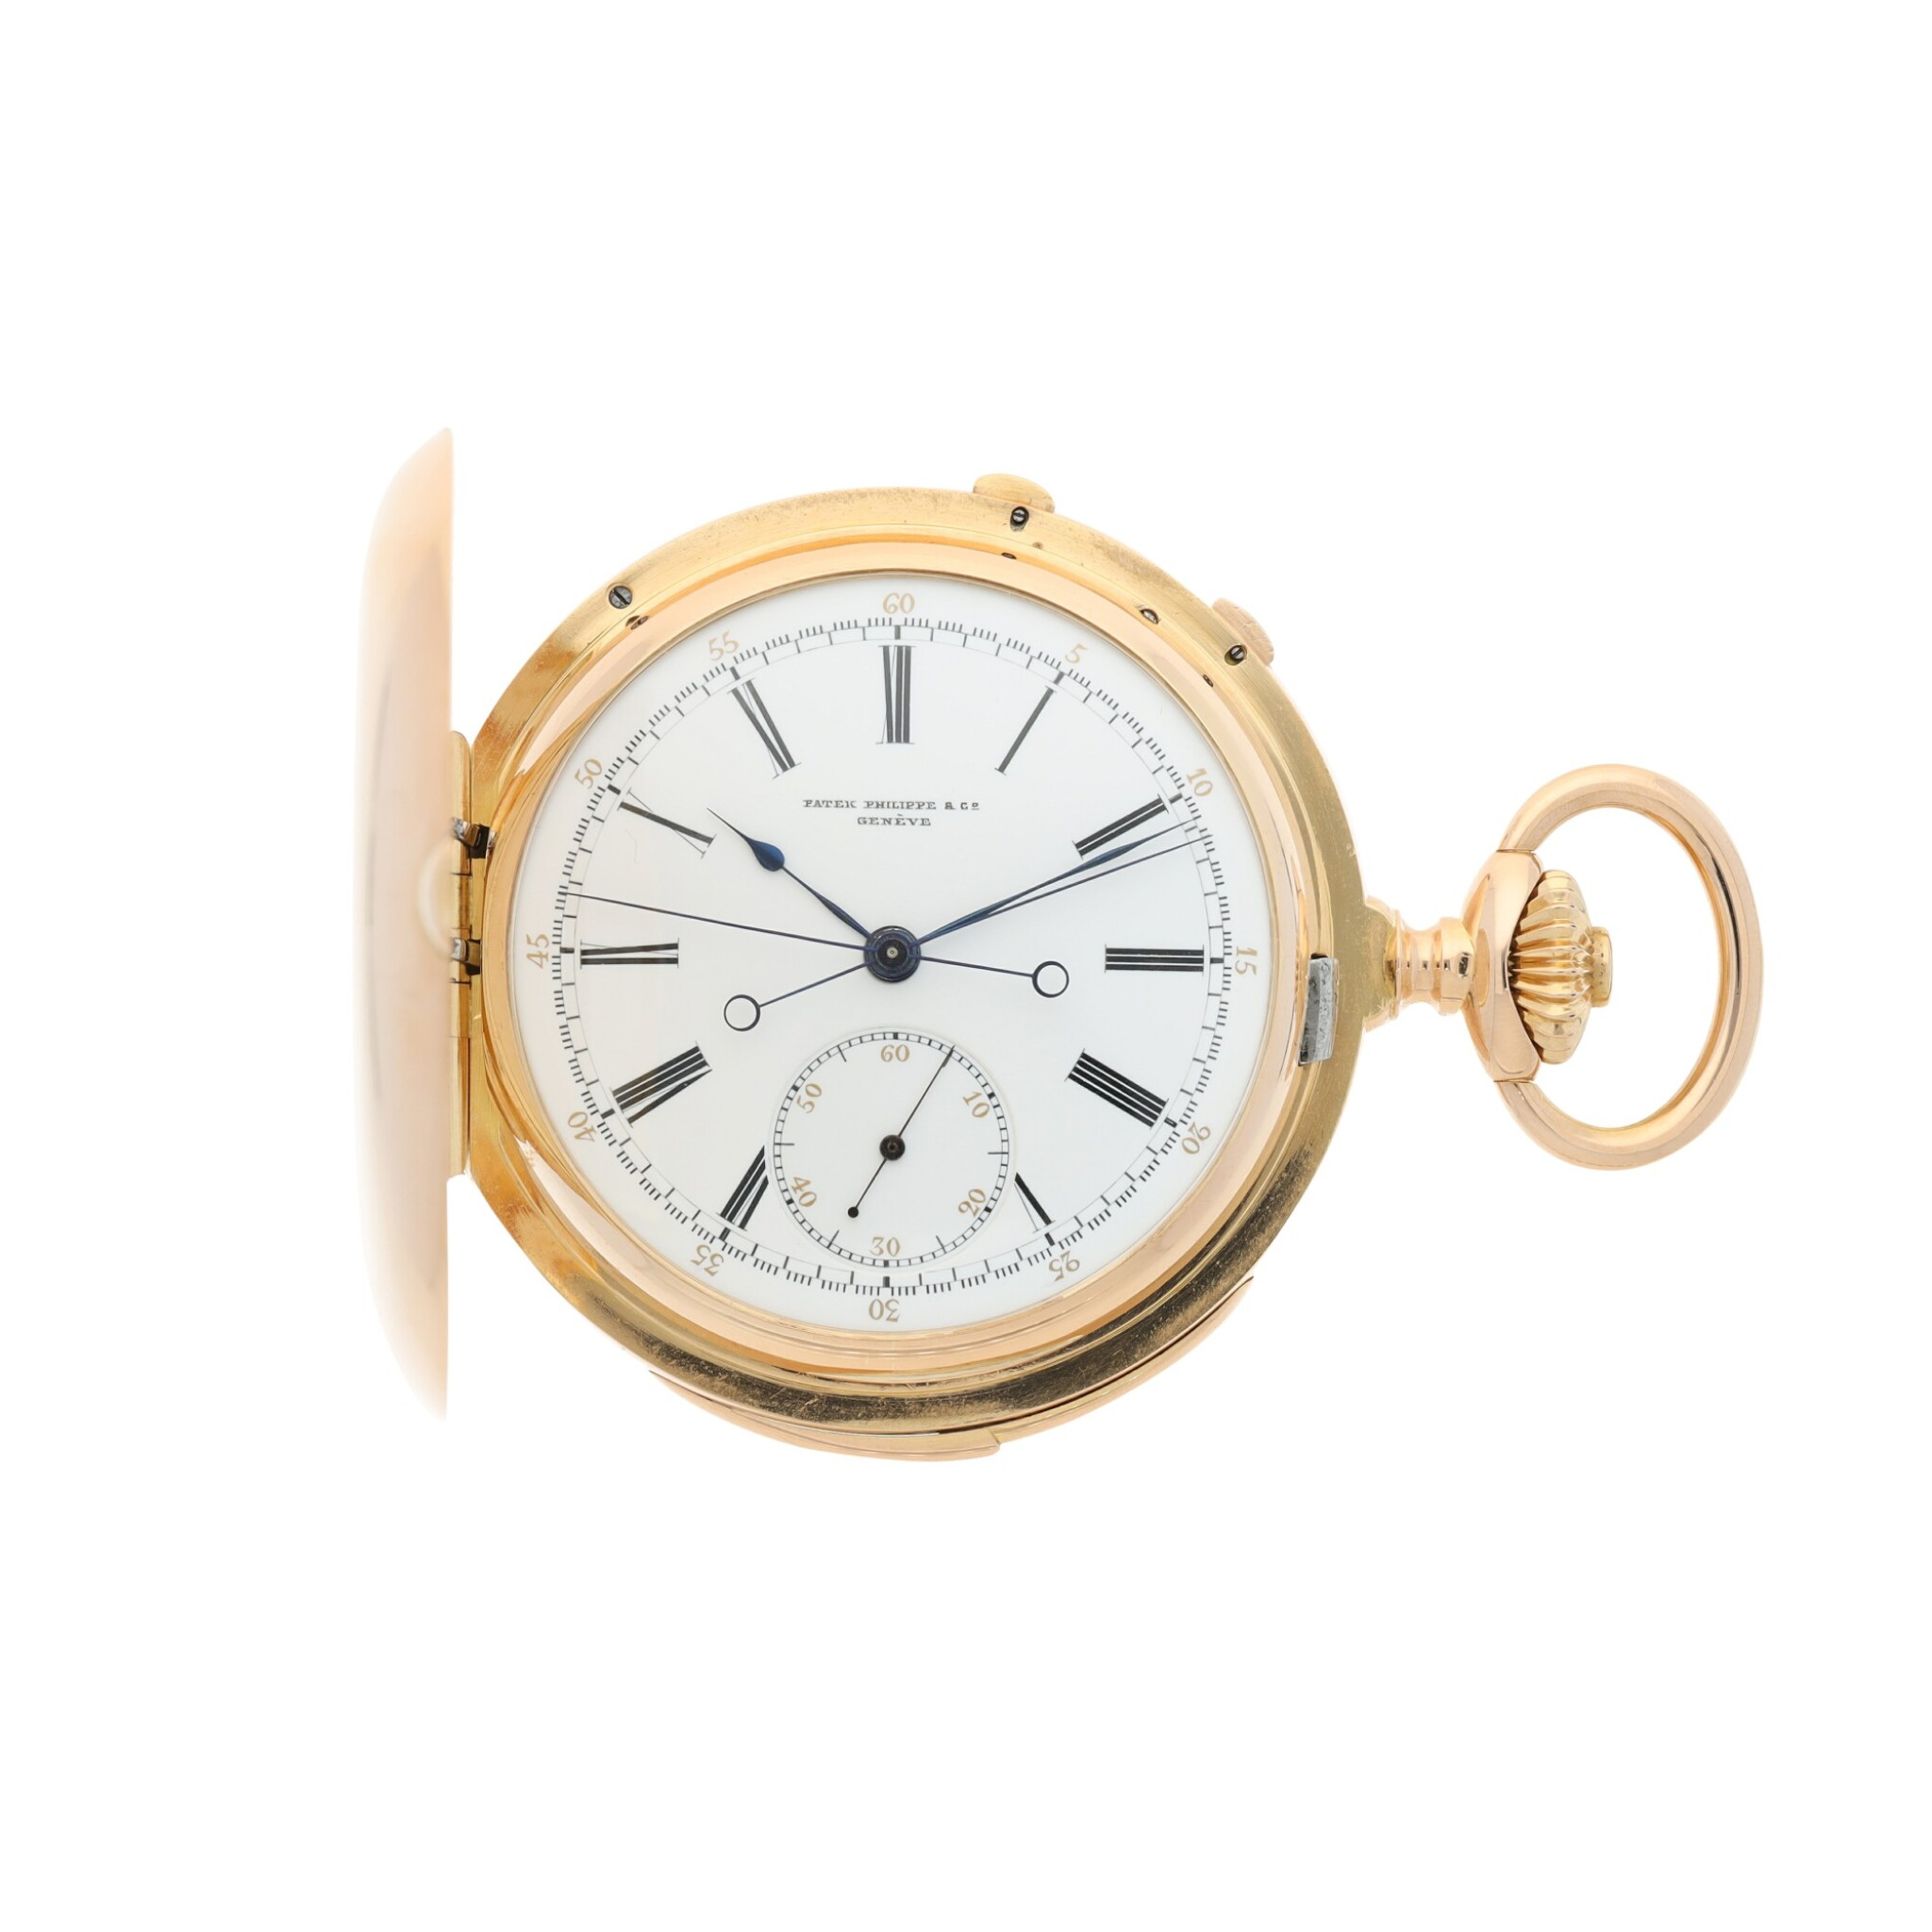 View full screen - View 1 of Lot 40. PATEK PHILIPPE | A PINK GOLD MINUTE REPEATING HUNTING CASED SPLIT SECONDS CHRONOGRAPH WATCH, MADE IN 1892.